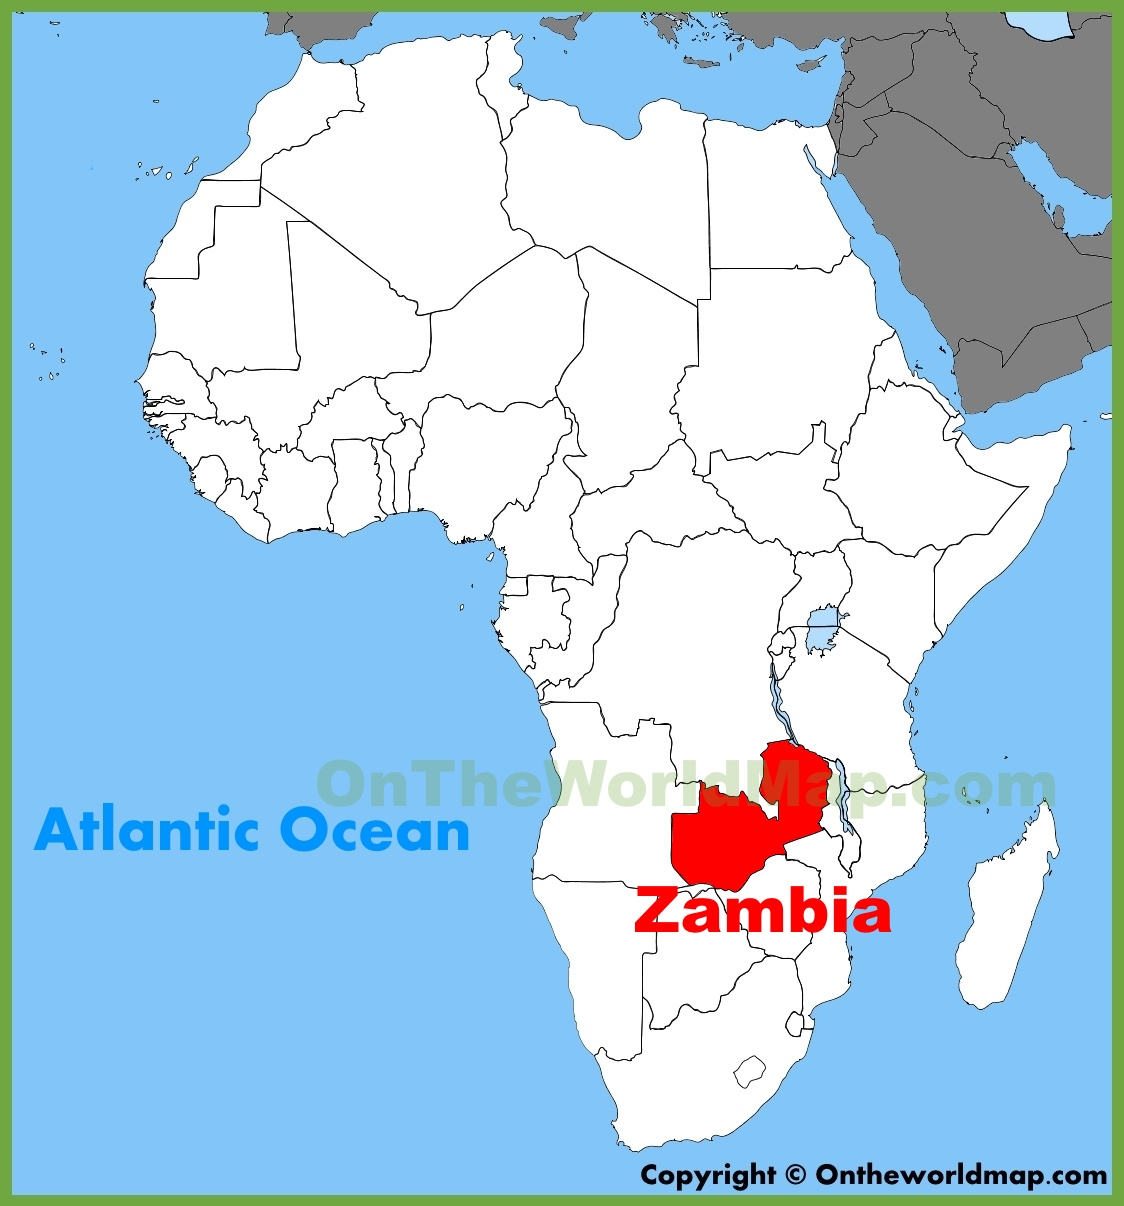 Zambia Africa Map Zambia location on the Africa map